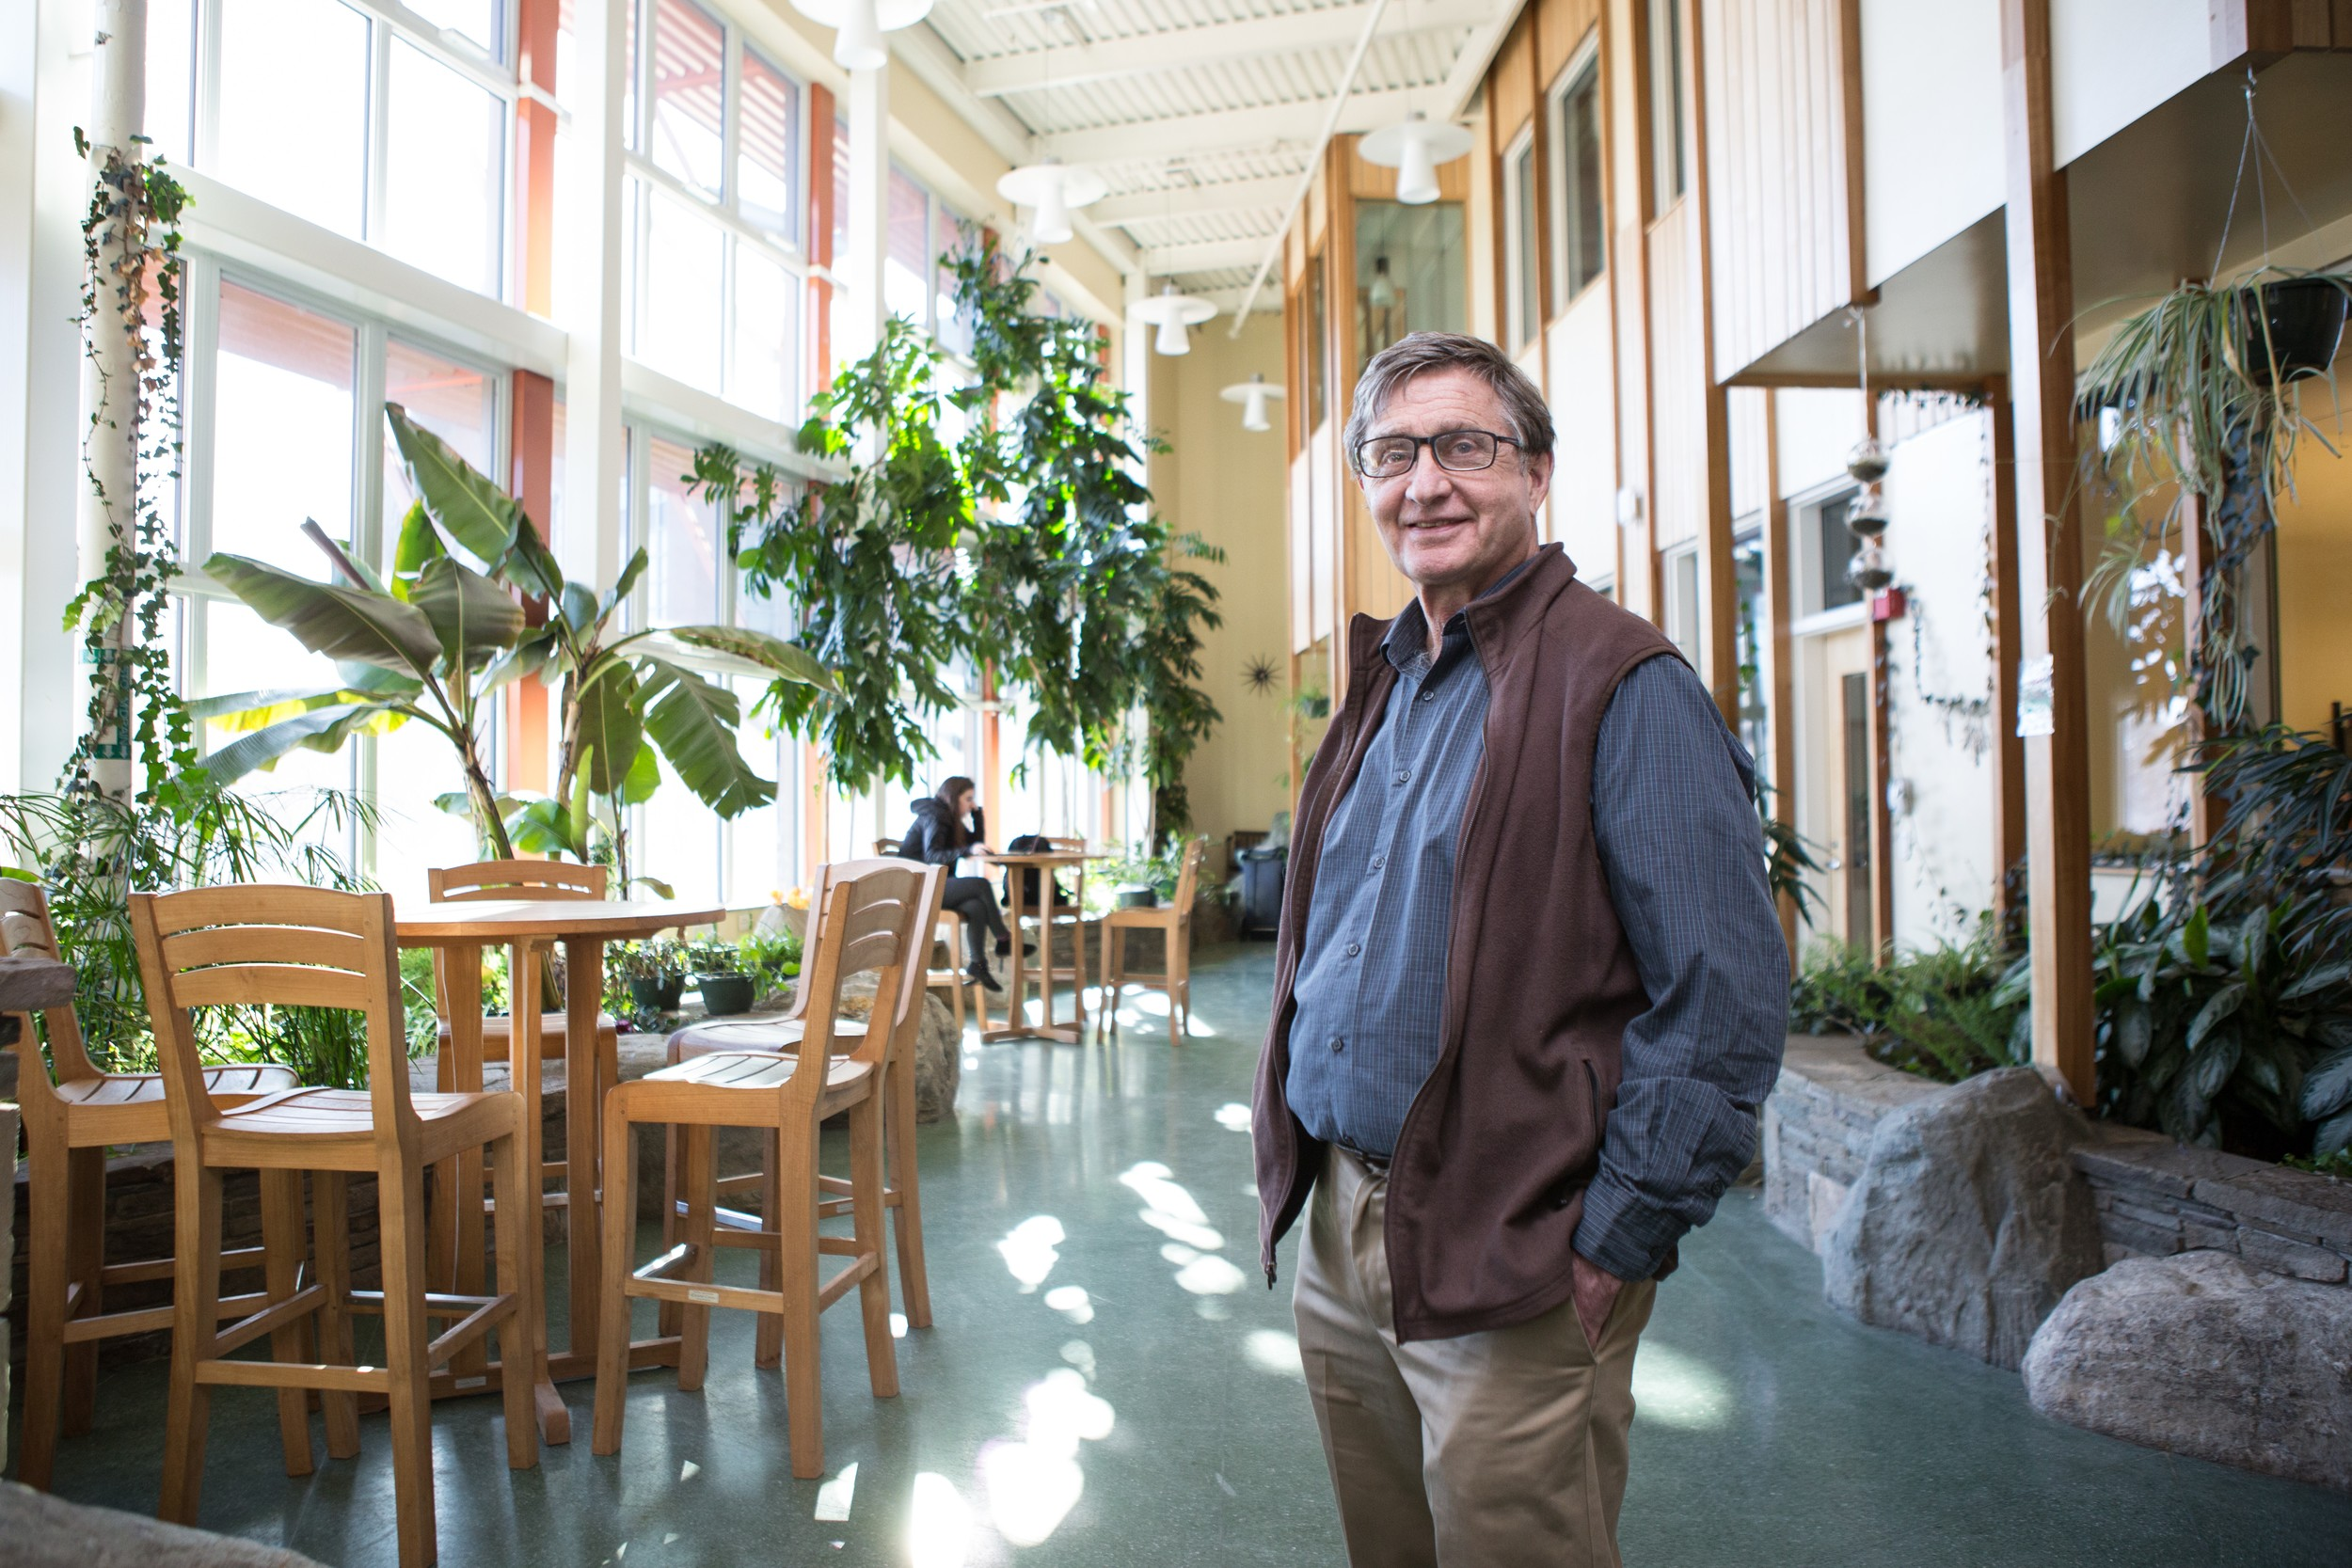 Bill Maclay pictured in the solarium of the George D. Aiken Center–home to the Rubenstein School of Environment and Natural Resources at the University of Vermont–and now a LEED Platinum green building after a 2012 renovation by Maclay's firm, Maclay Architects.